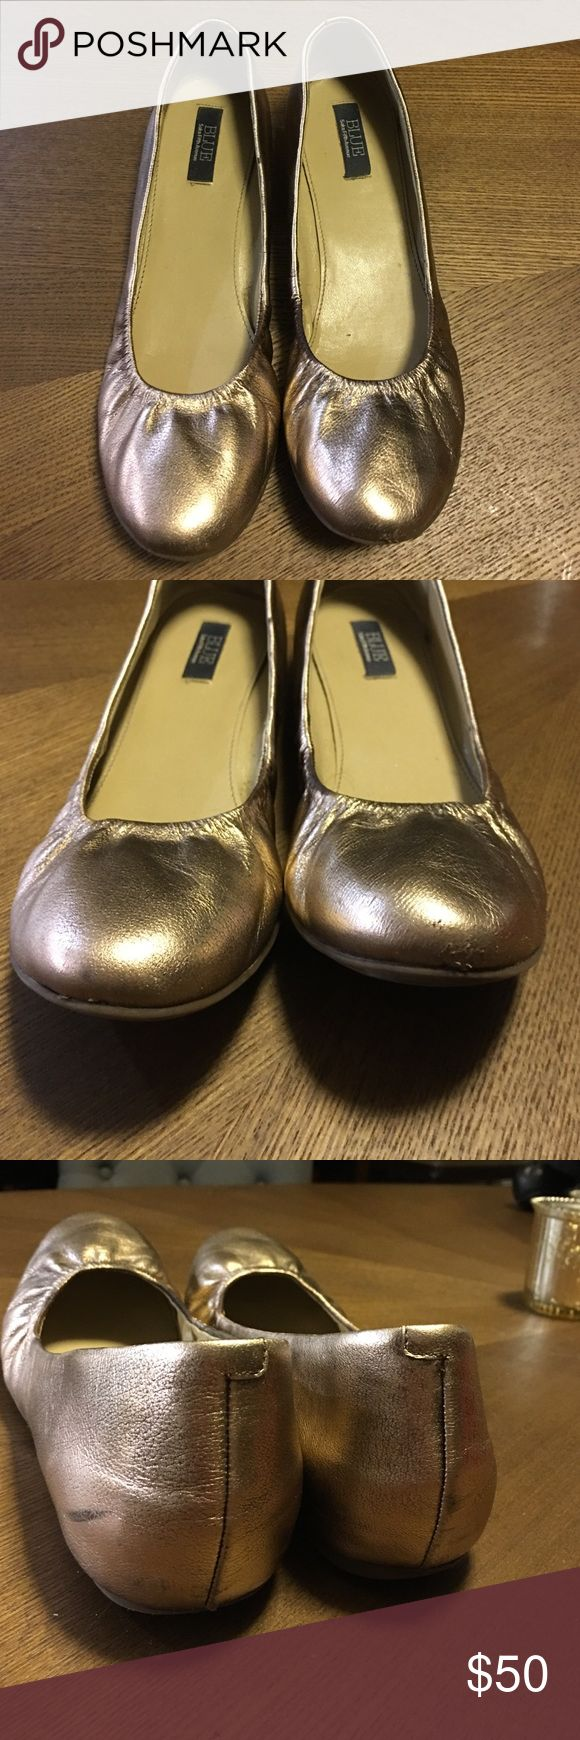 Rose Gold Ballet Flats Saks Fifth Avenue Blue Label. Gorgeous color. GUC; one scuff on back of left shoe (pictured), which is difficult to see. Other minor flaws pictured. Saks Fifth Avenue Shoes Flats & Loafers